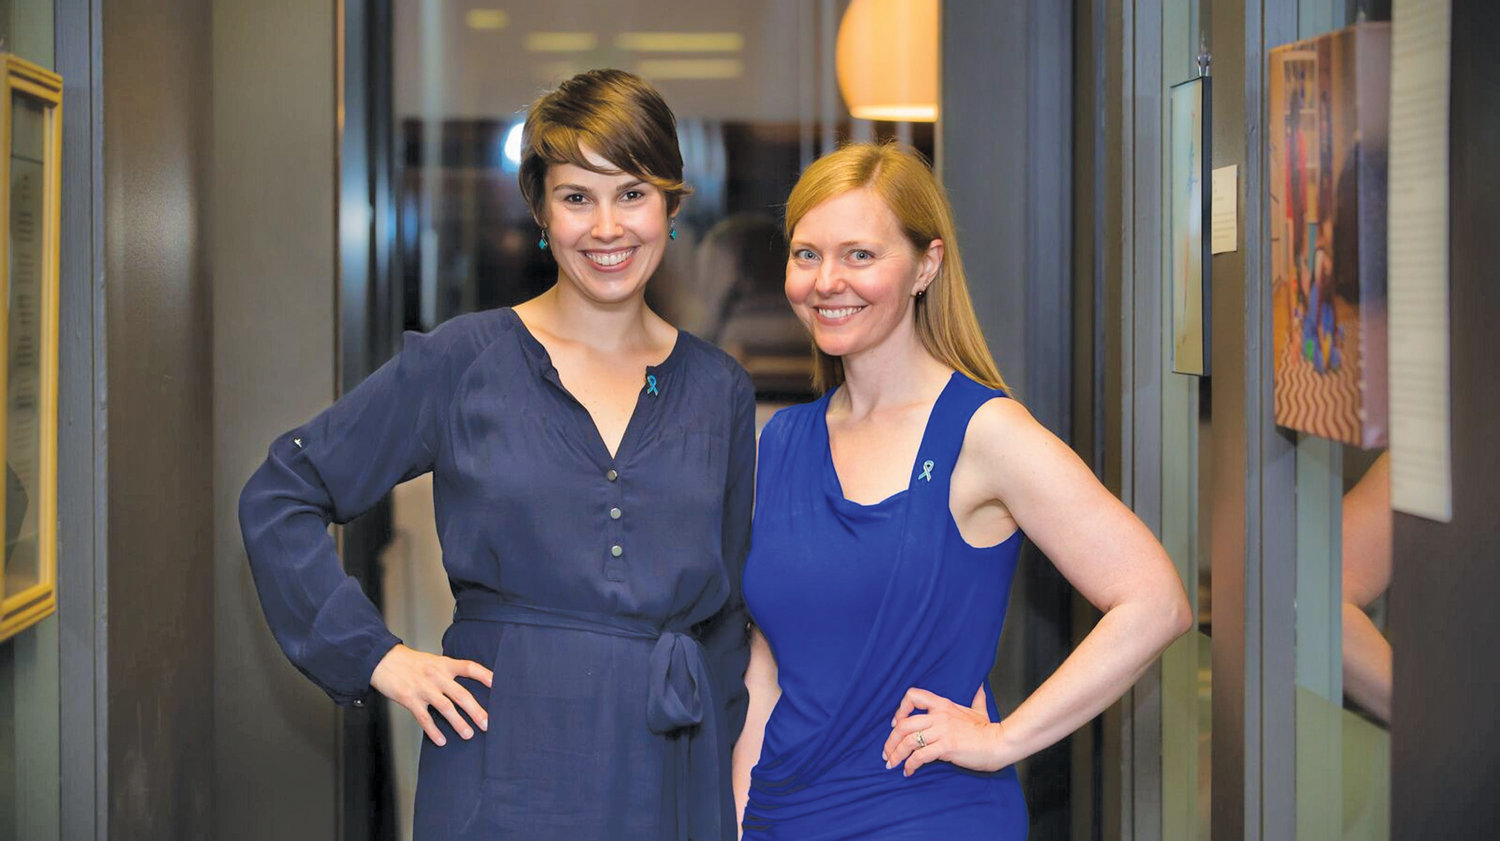 Myaria Novotny (left) and Elizabeth Walker co-founded ART of Infertility to create a safe, creative space for those impacted by infertility.